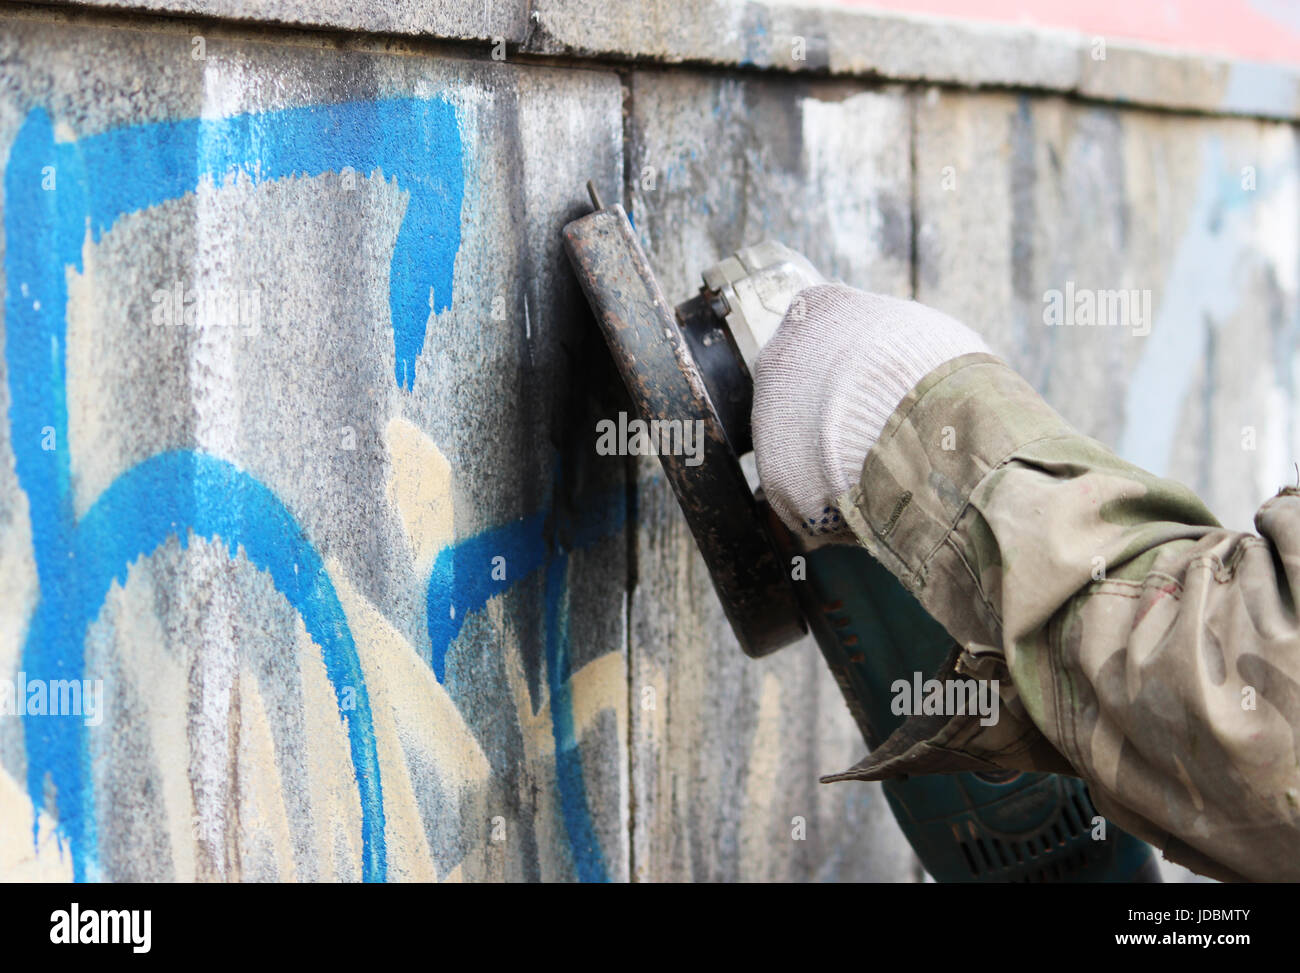 Removal of graffiti on a concrete wall of an underground passage with the help of a angle grinder - Stock Image